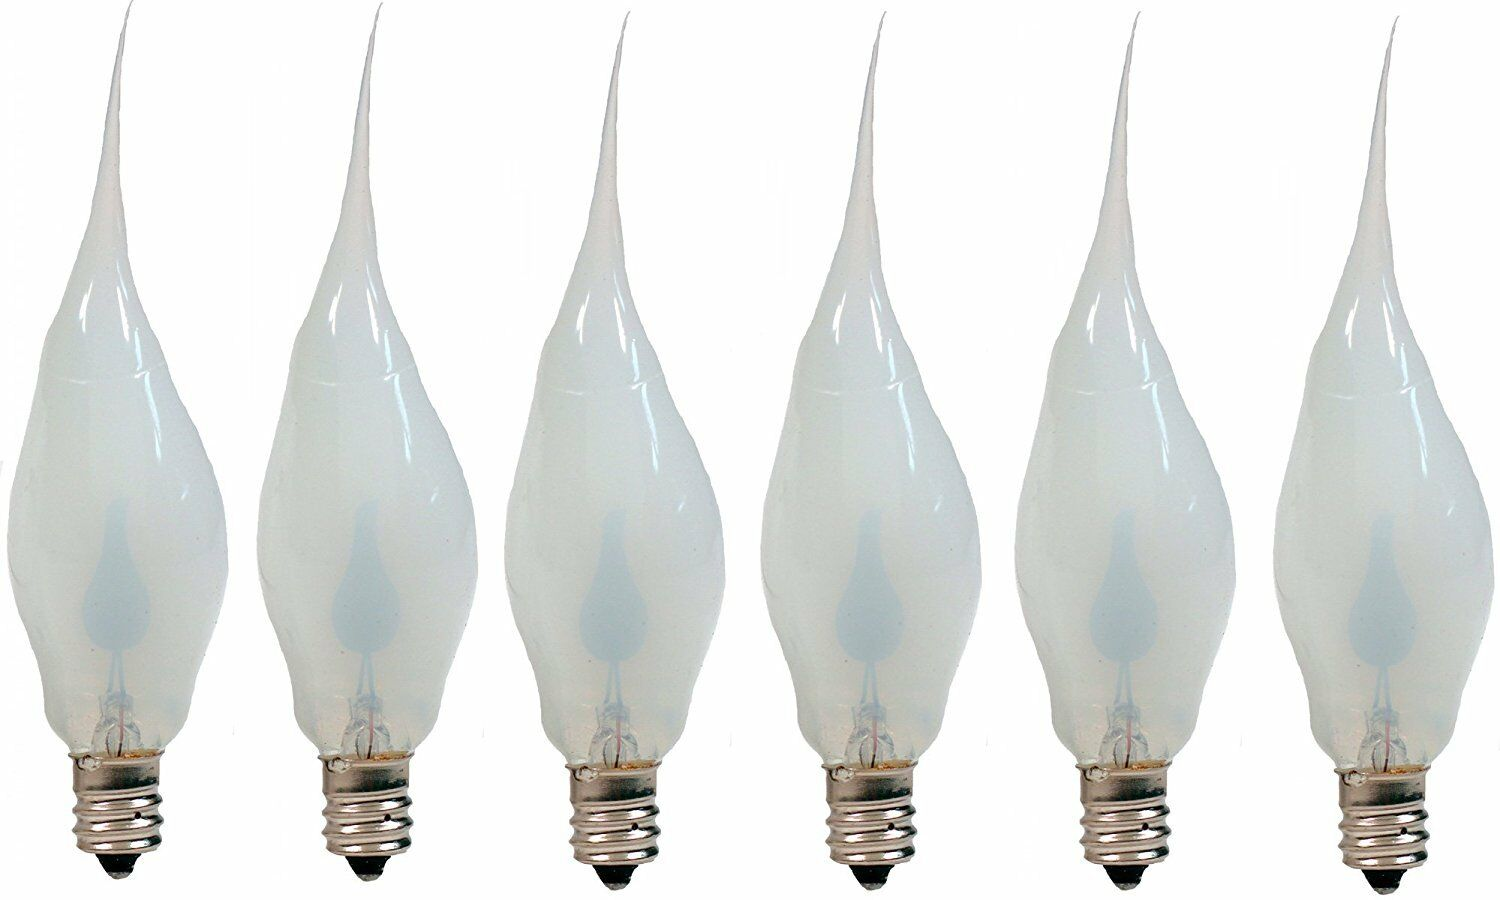 Silicone Dipped Flickering Flame Bulb, Country Candle Lamp Style, Pack of 6 Home & Garden